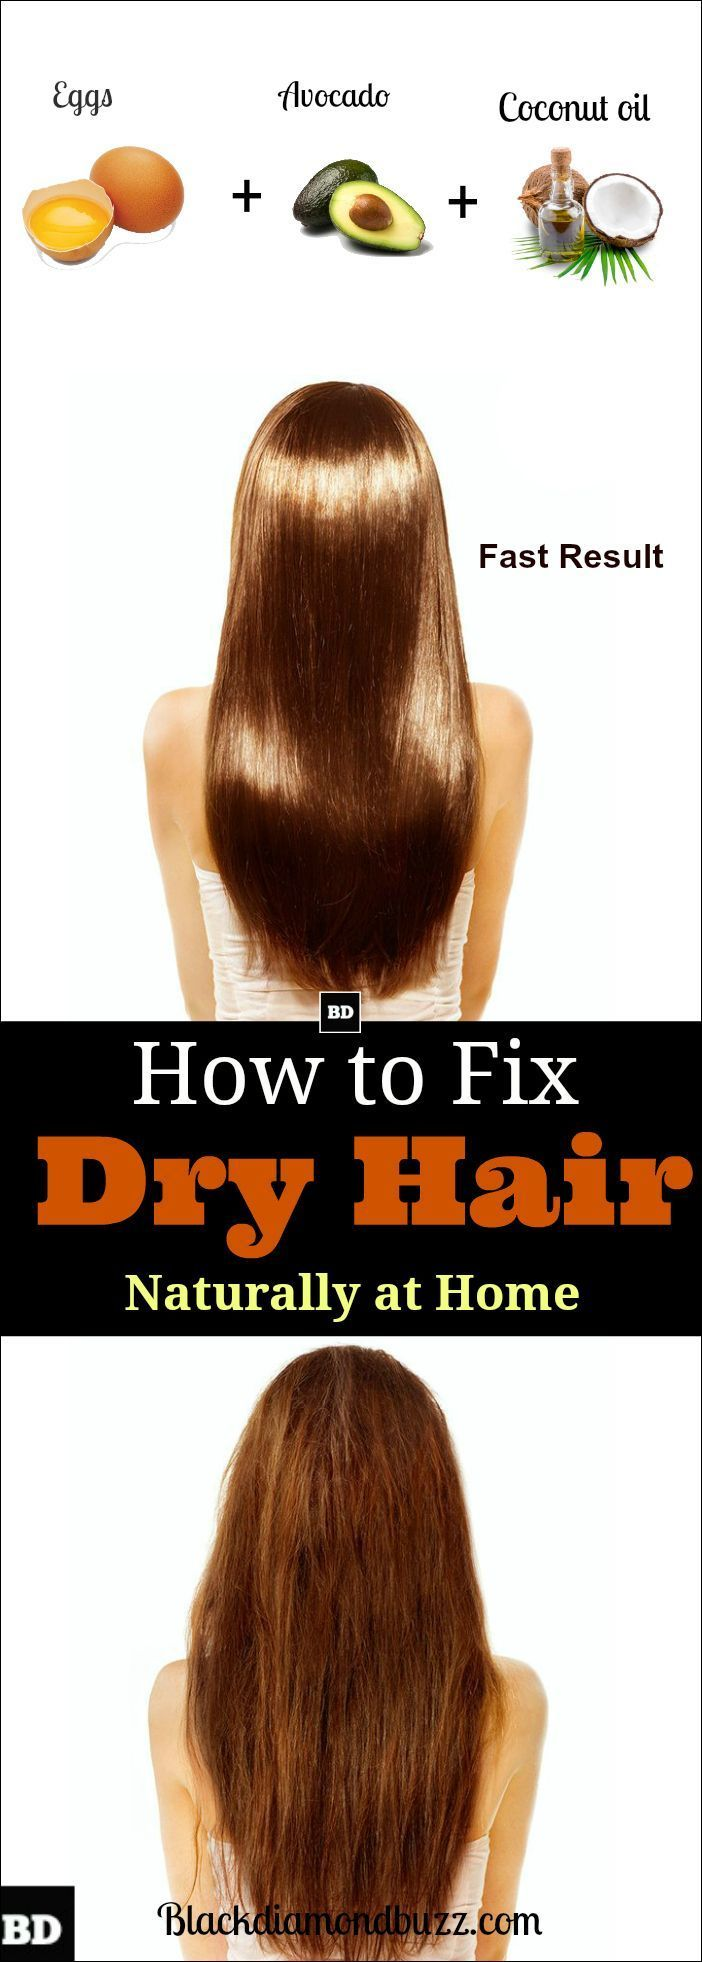 Dry Hair Remedies You can fix your dry hair and frizzy